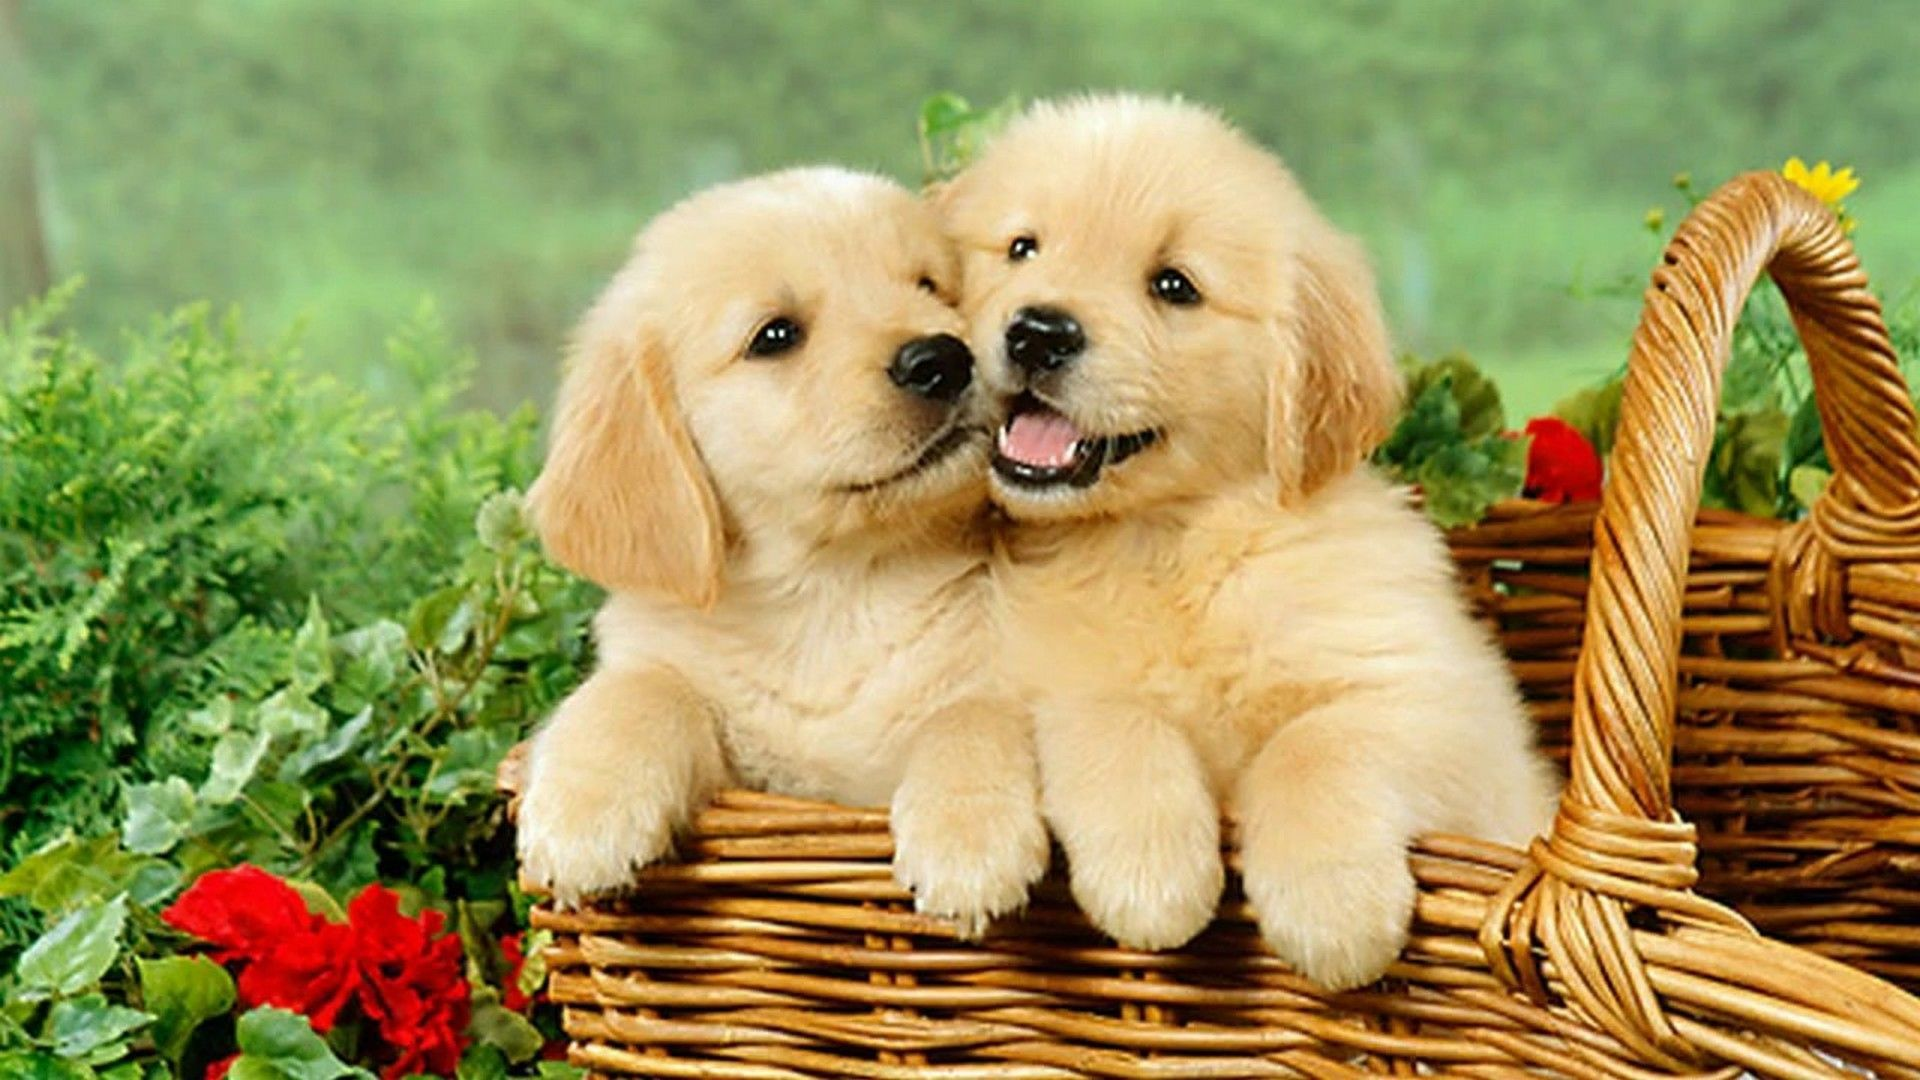 Cute Puppy Desktop Wallpapers - Top